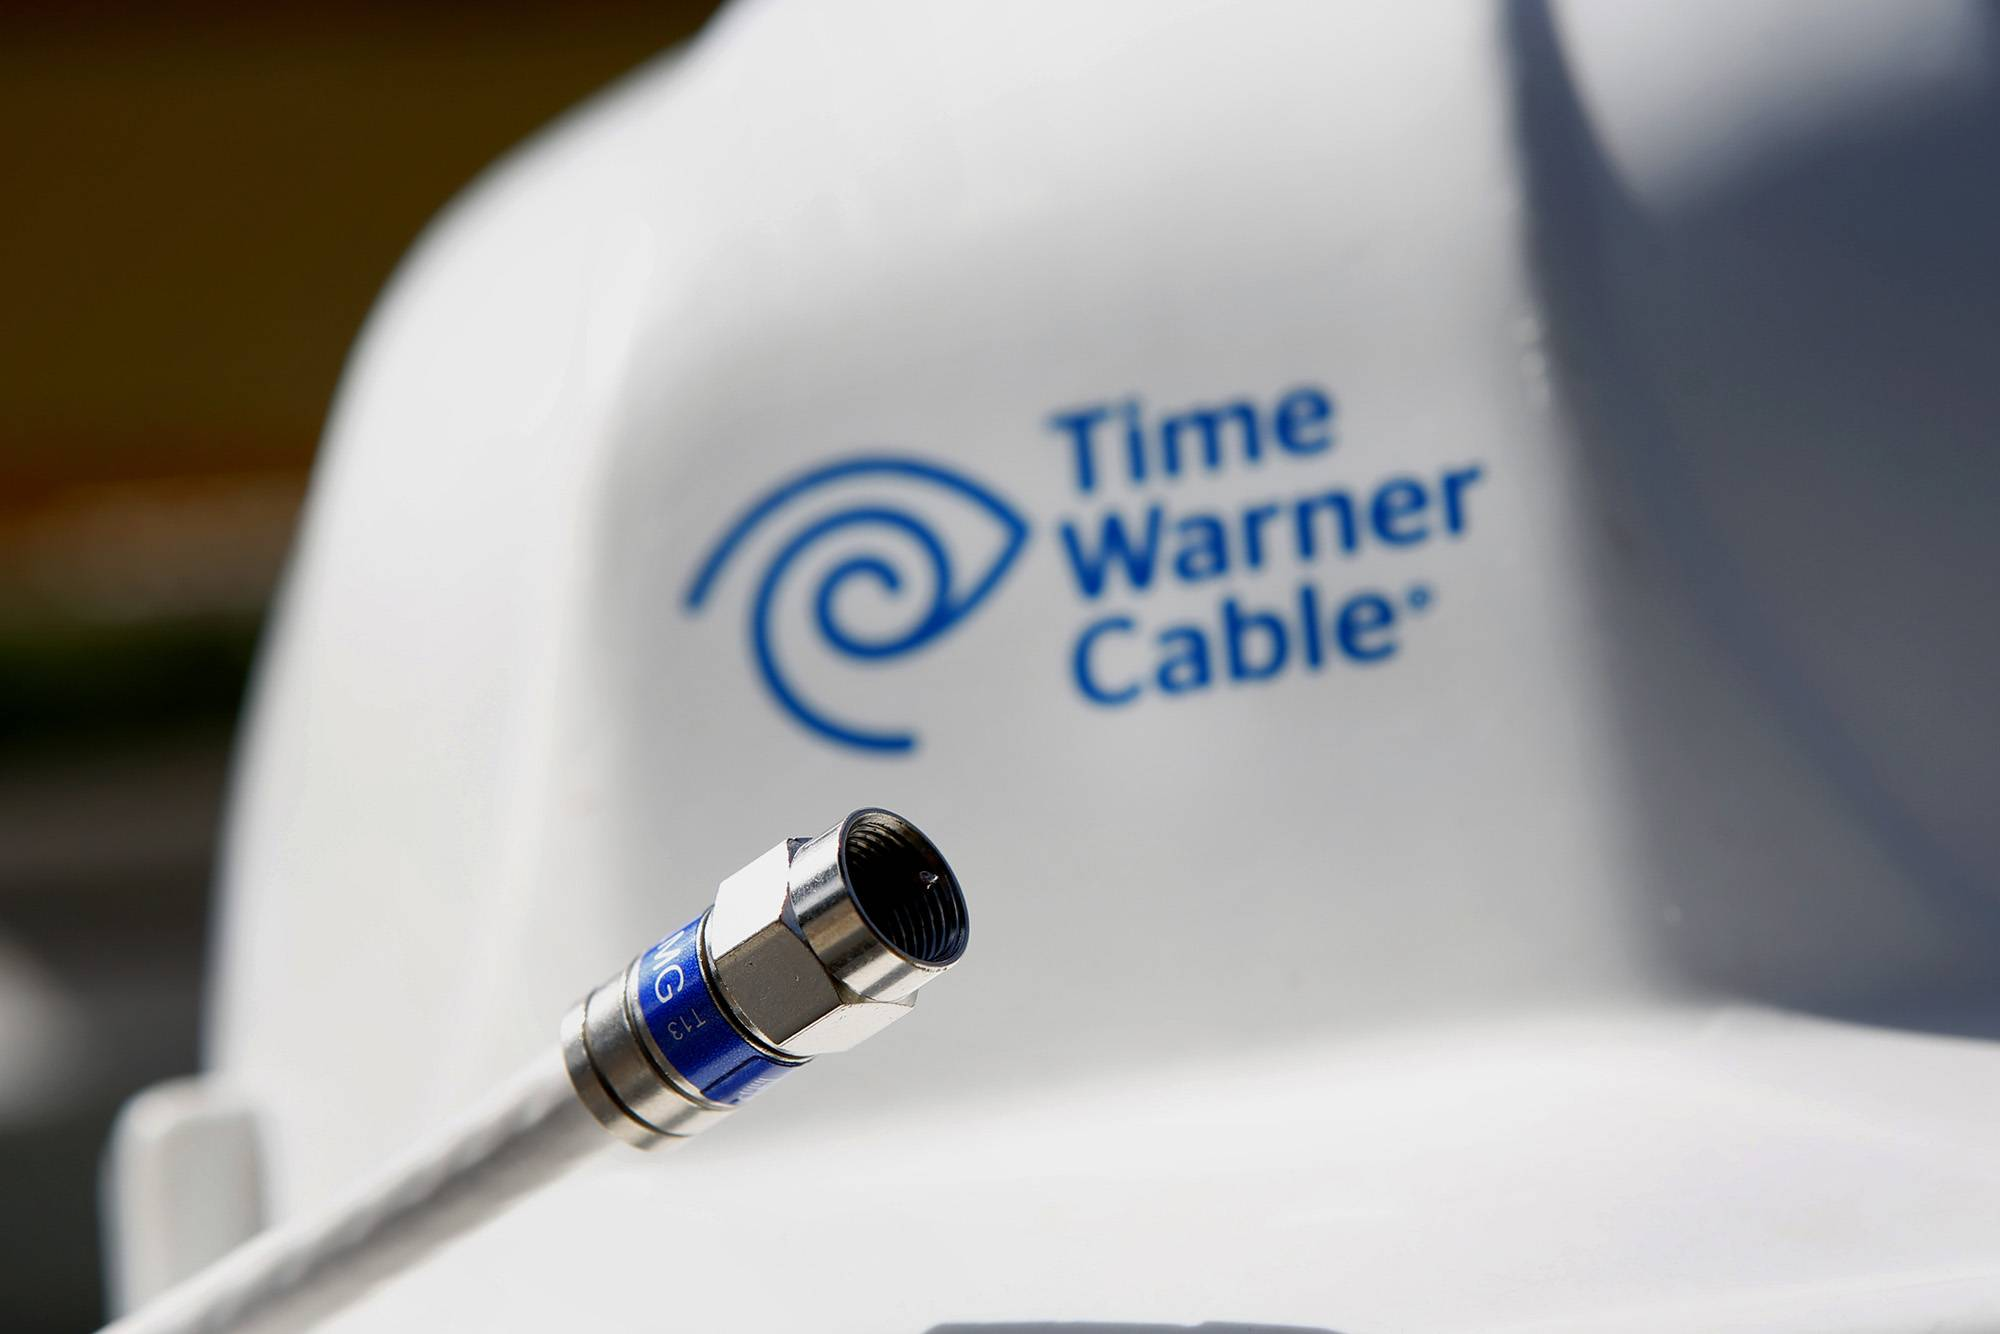 Time Warner Cable said Wednesday that service was largely restored after a problem during routine maintenance caused a nationwide outage of its Internet service for hours.